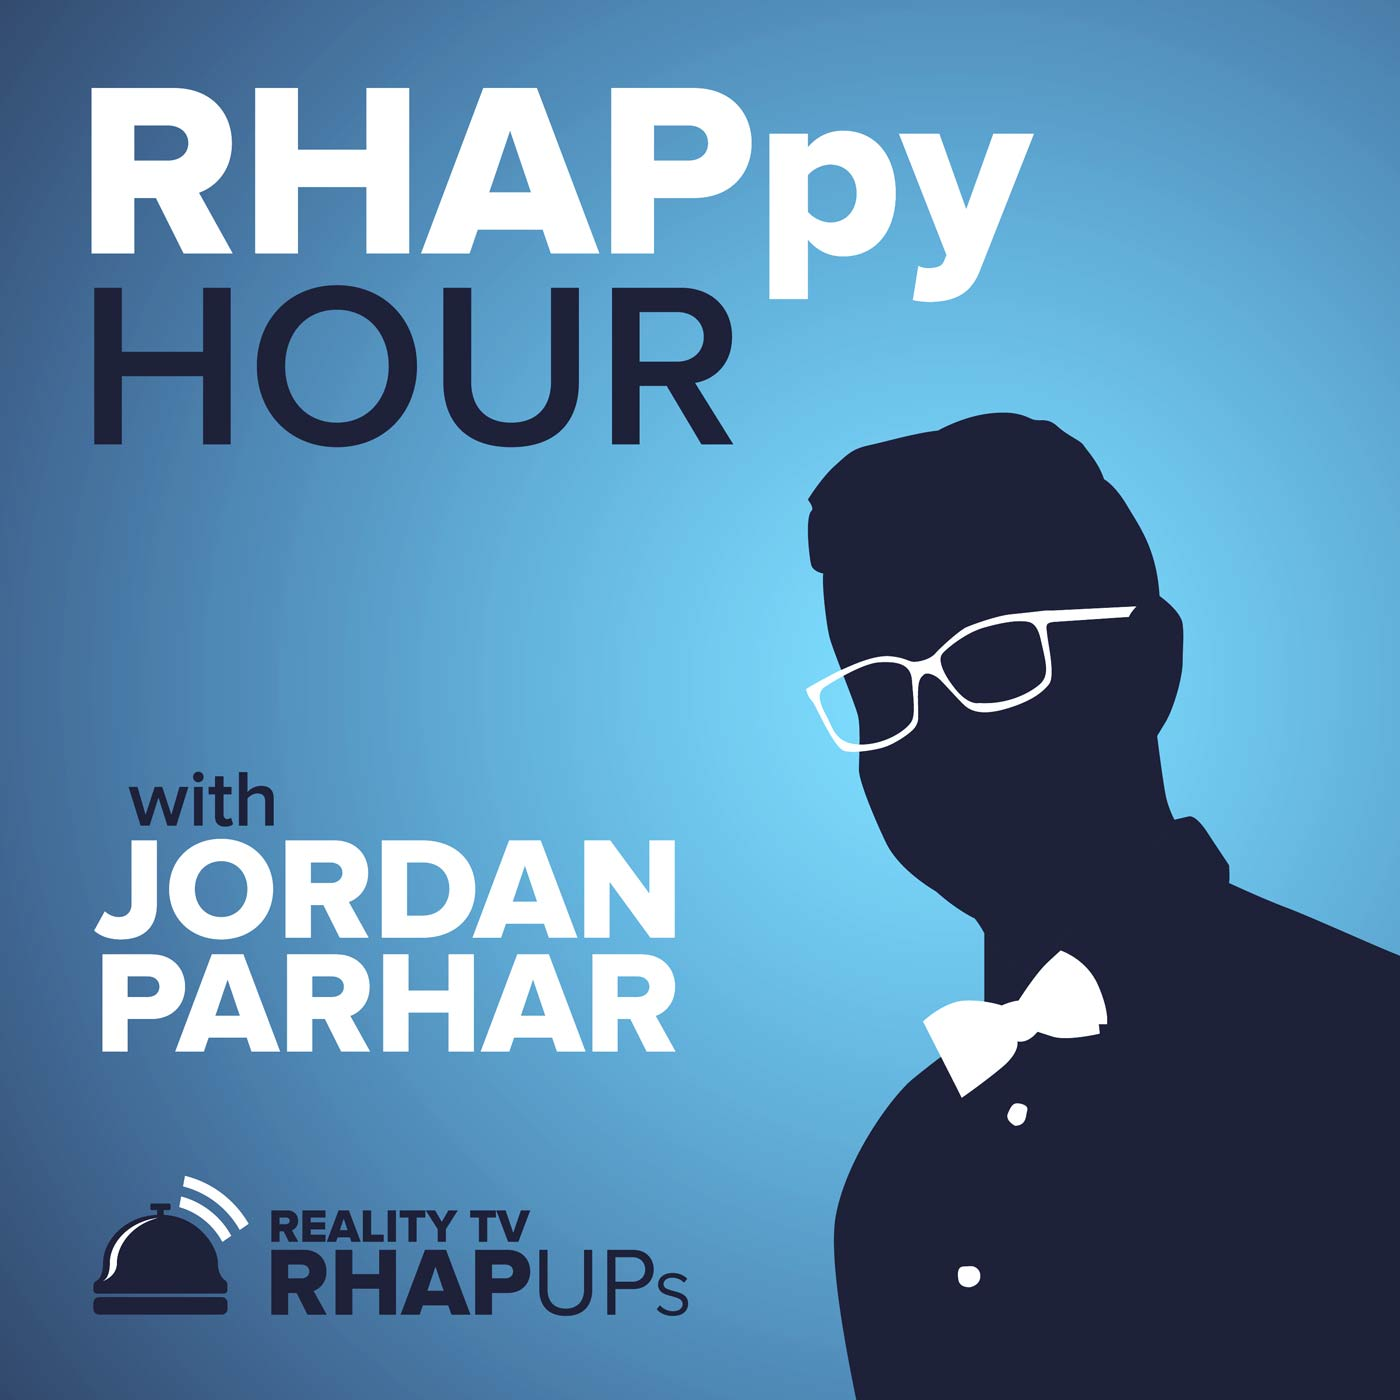 Reality TV RHAPups | The RHAPpy Hour